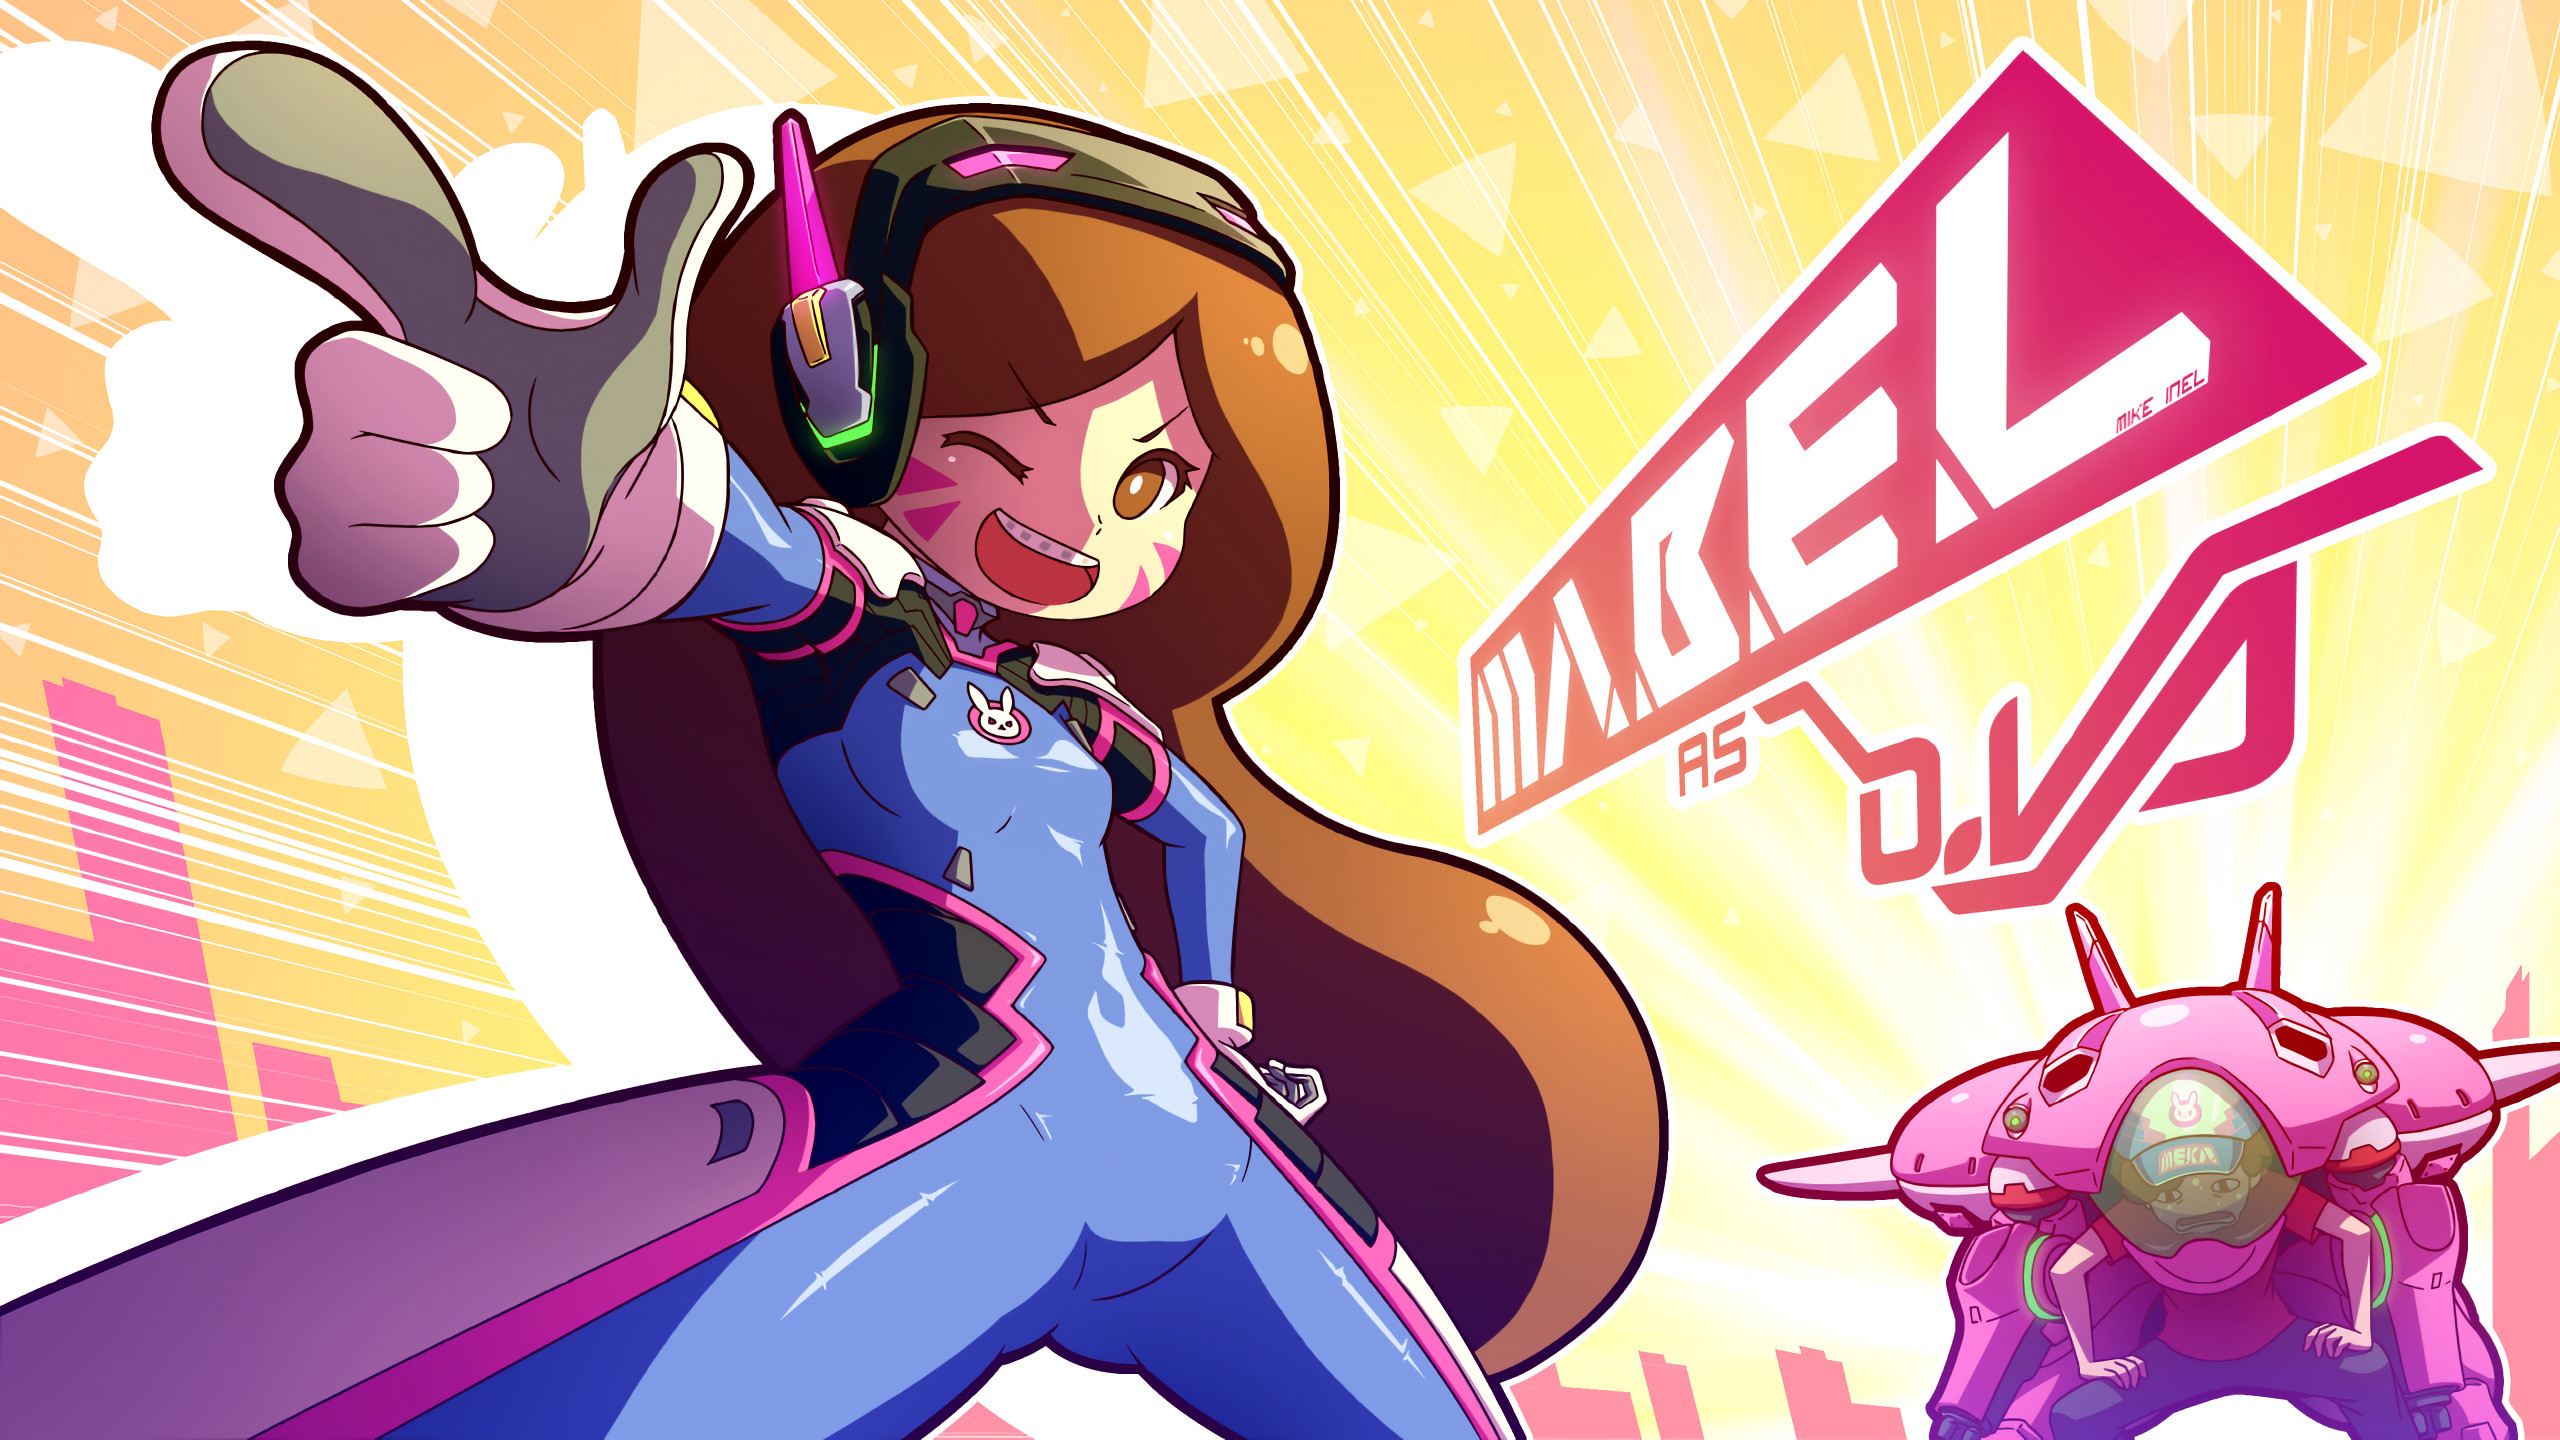 2560x1440 Video Game - Crossover Mabel Pines Stanley Pines Overwatch Gravity Falls  Wallpaper